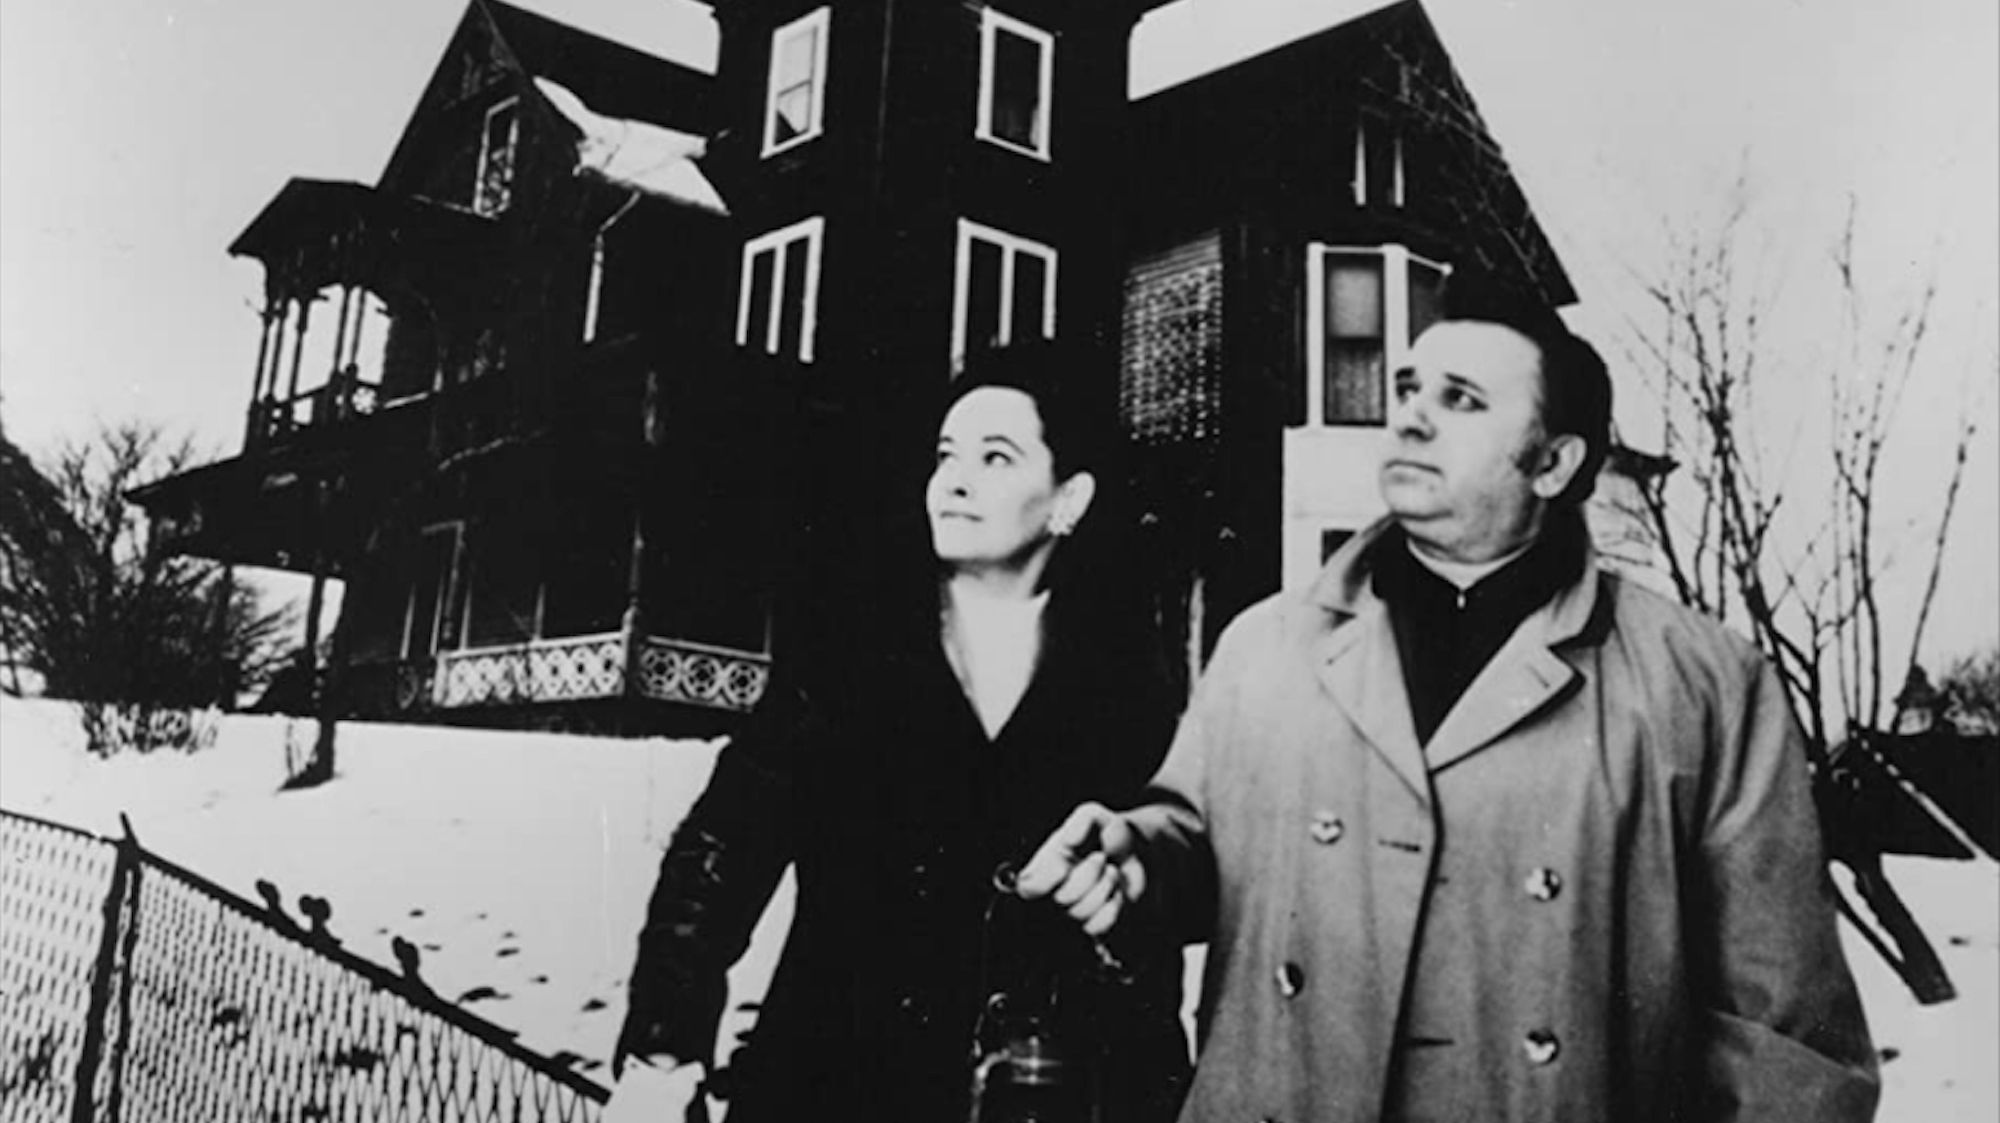 Facts About Ed and Lorraine Warren